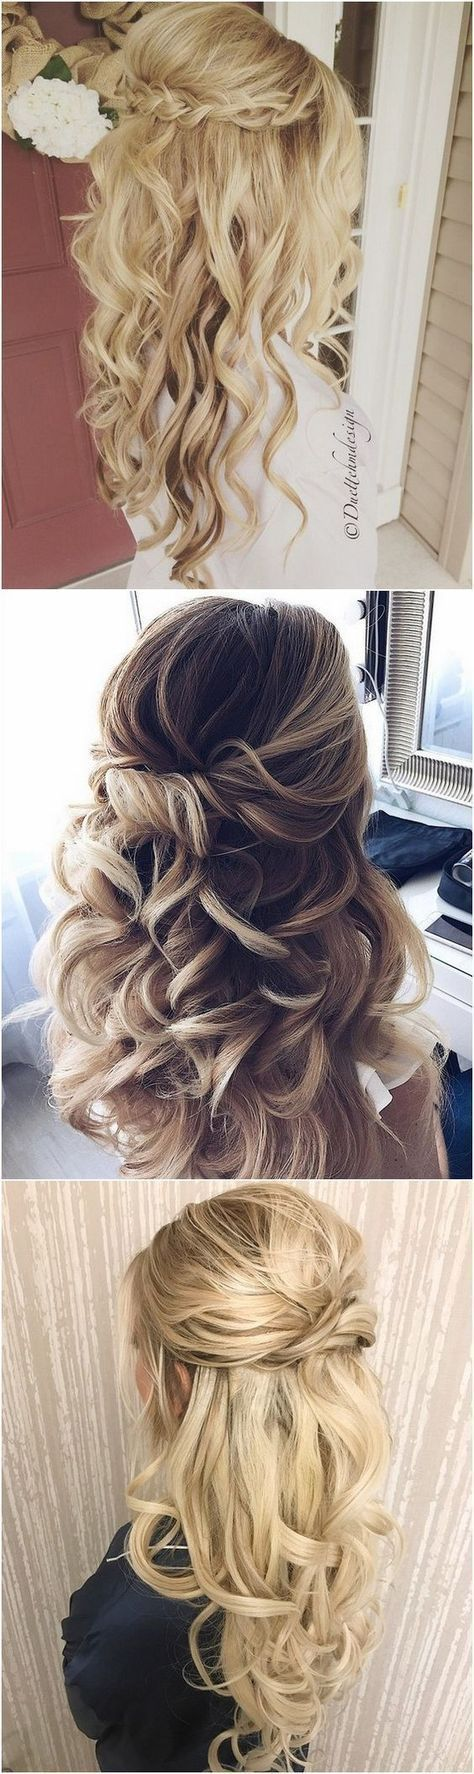 For more: @MissMind • Feel free message me• daily new pins • visit my page••• awesome (wedding) hairstyles half up half down #CornrowsHalf #WeddingHairstyles